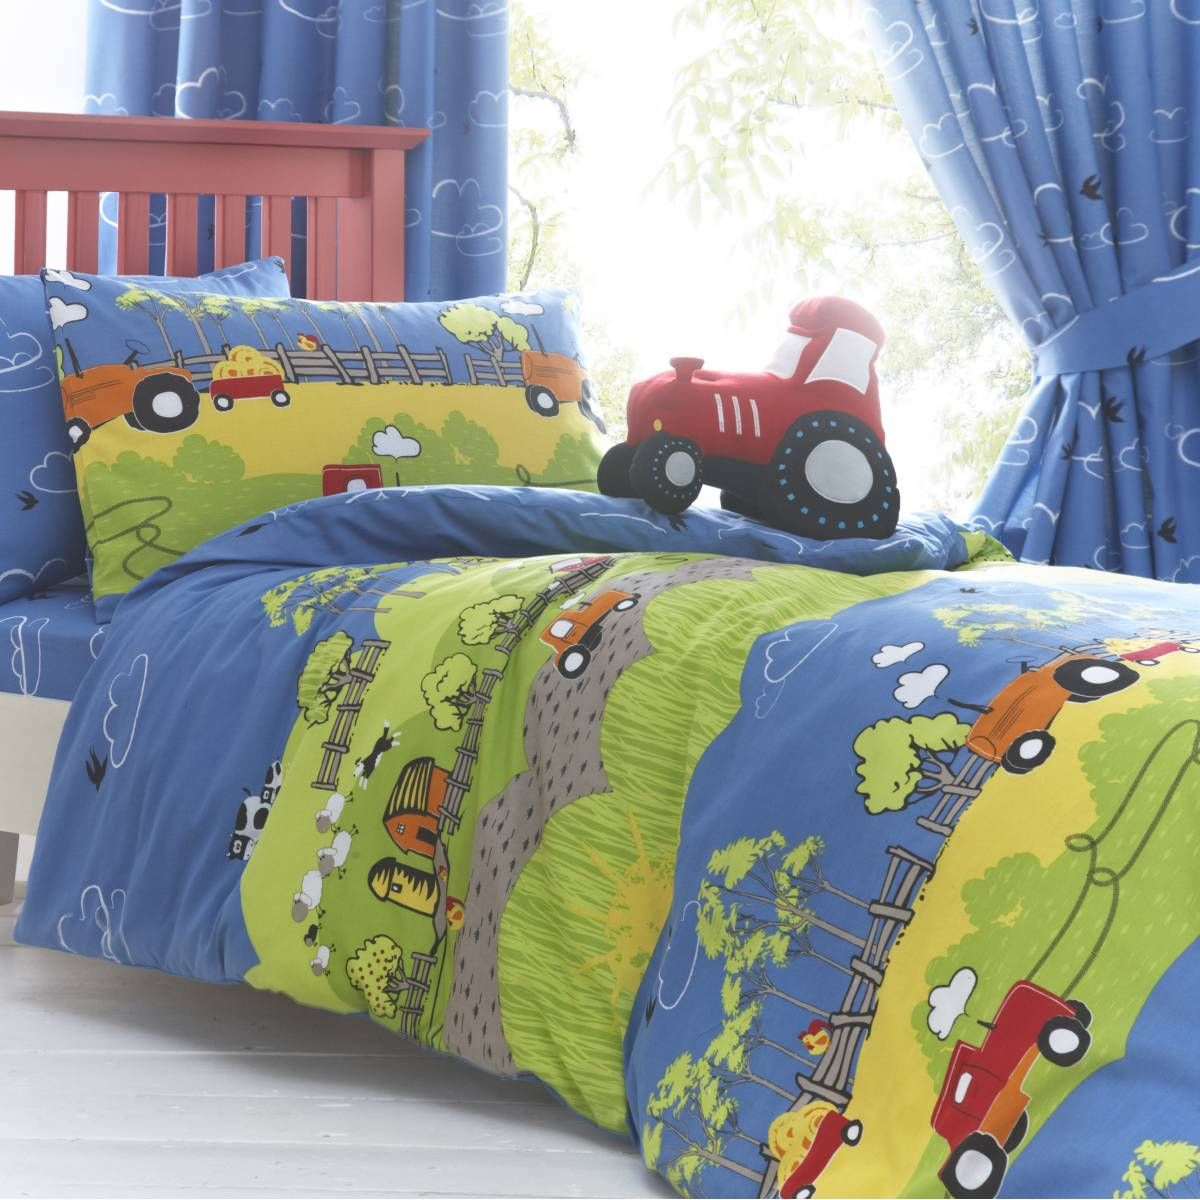 Toddler Bed Set With Tractors Farm Tractor Duvet Set